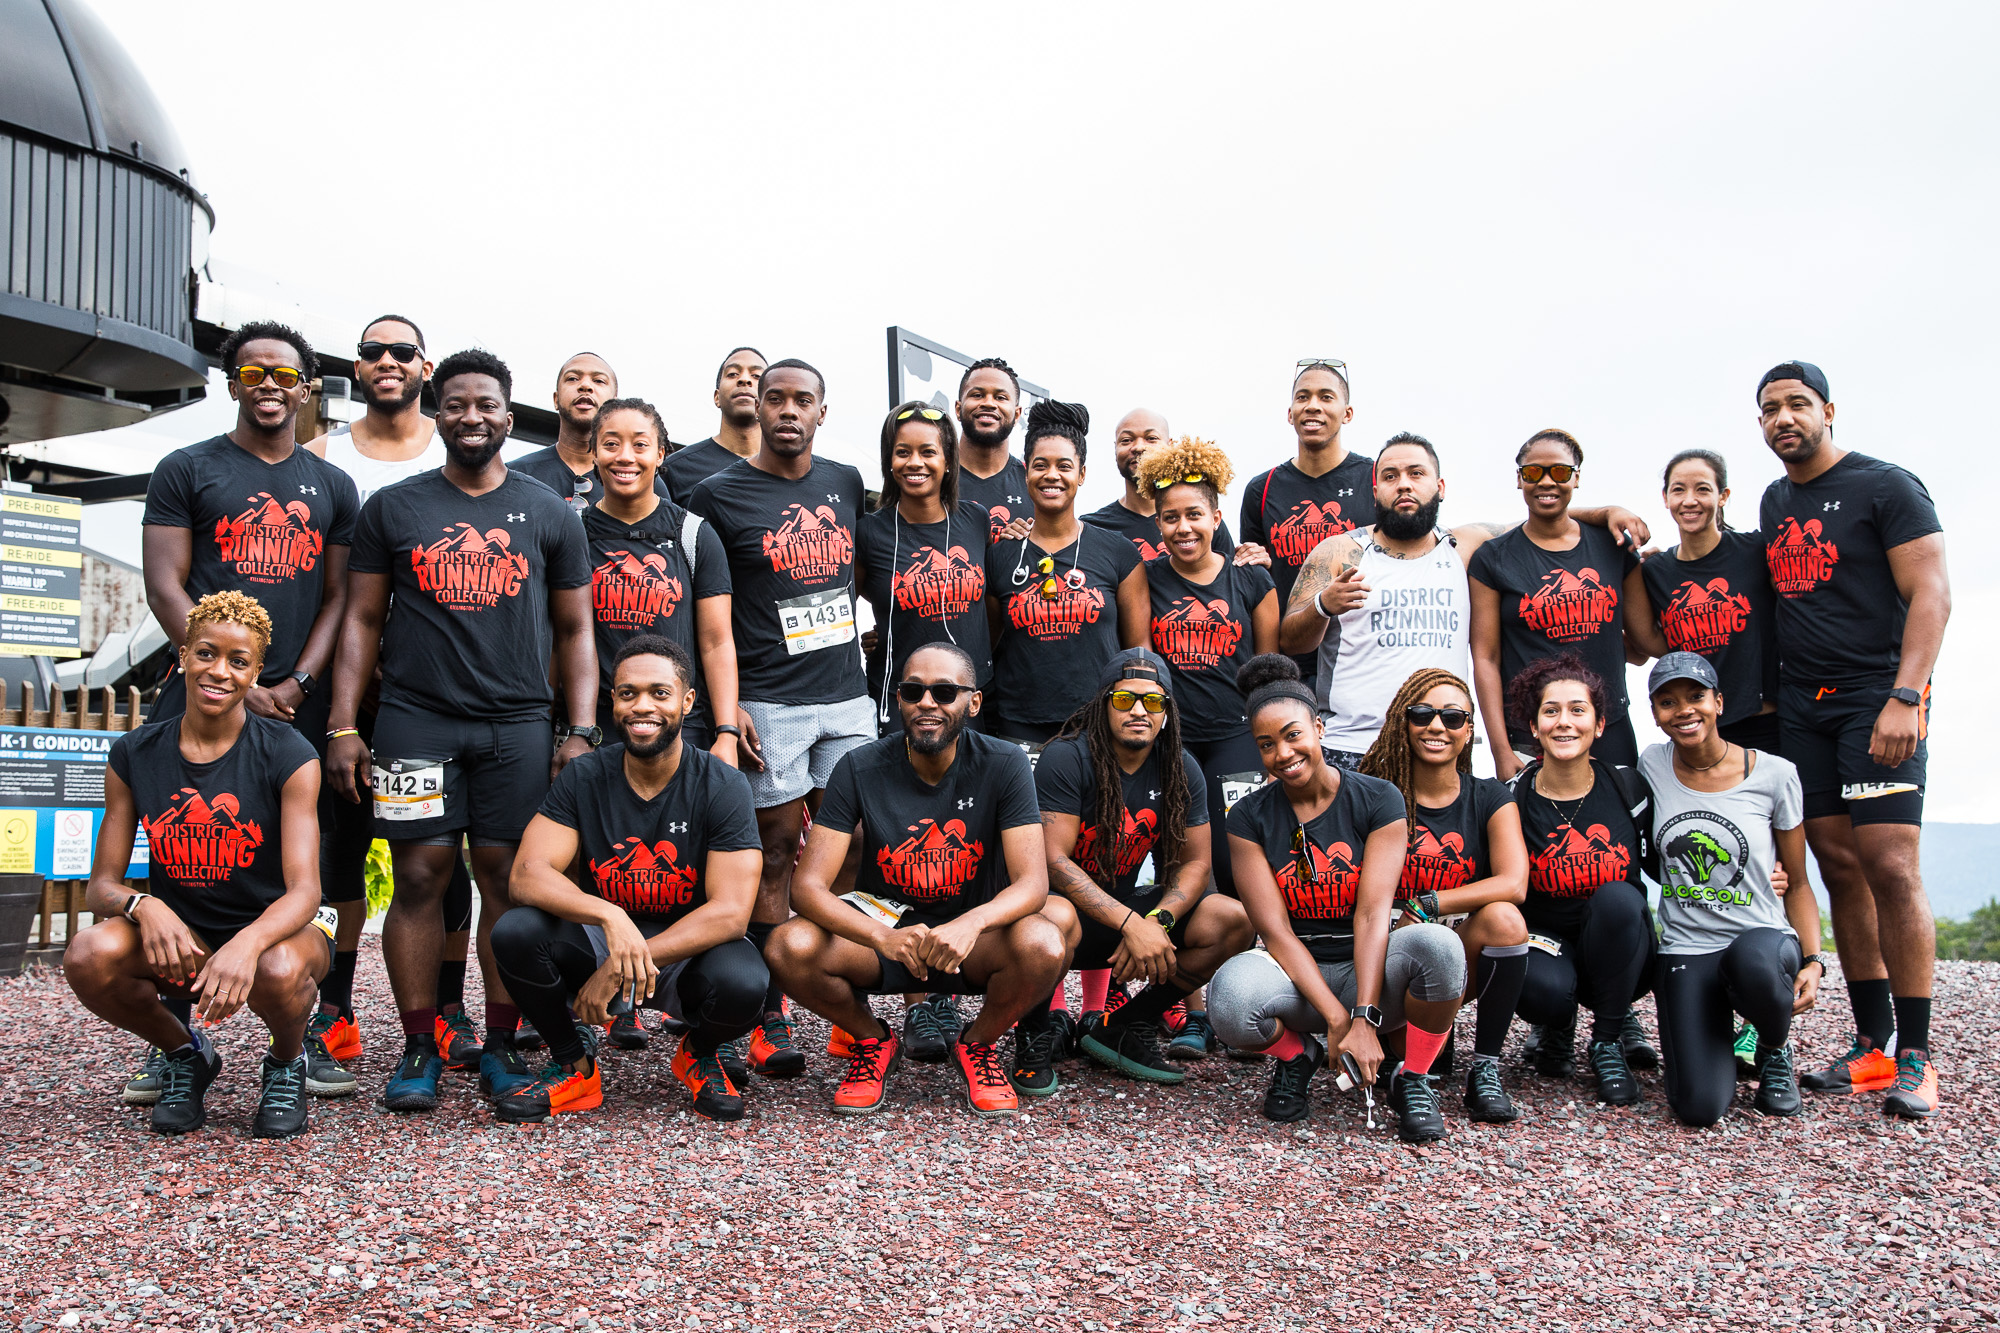 District Running Collective at the UA Mountain Run